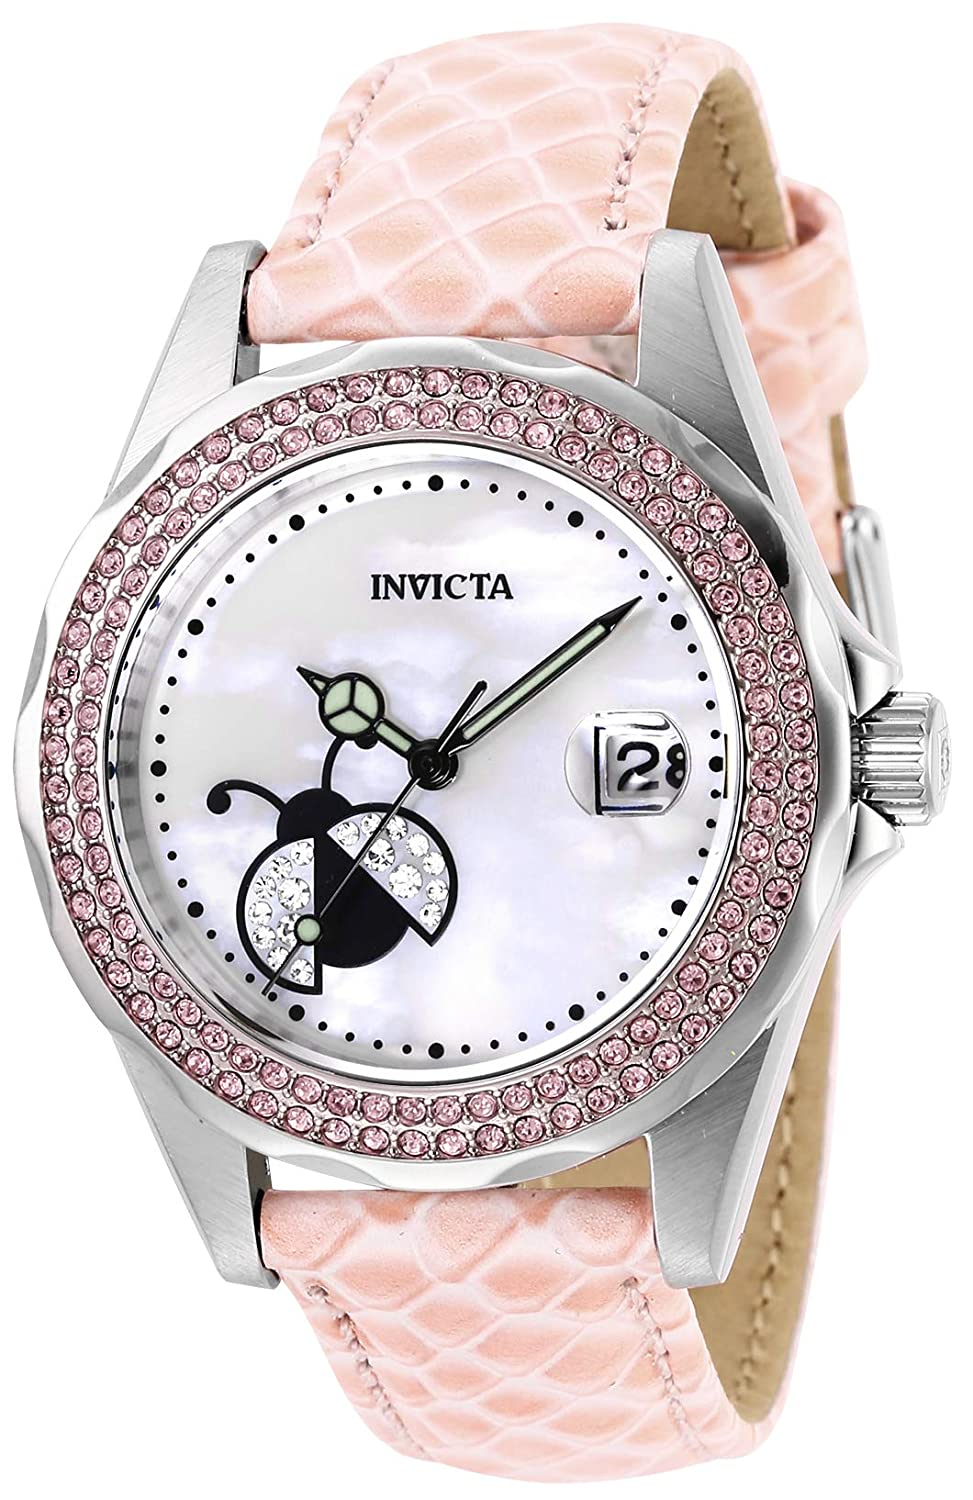 Invicta Women s Angel Stainless Steel Quartz Watch with Leather Calfskin Strap, Pink, 18 Model 29027